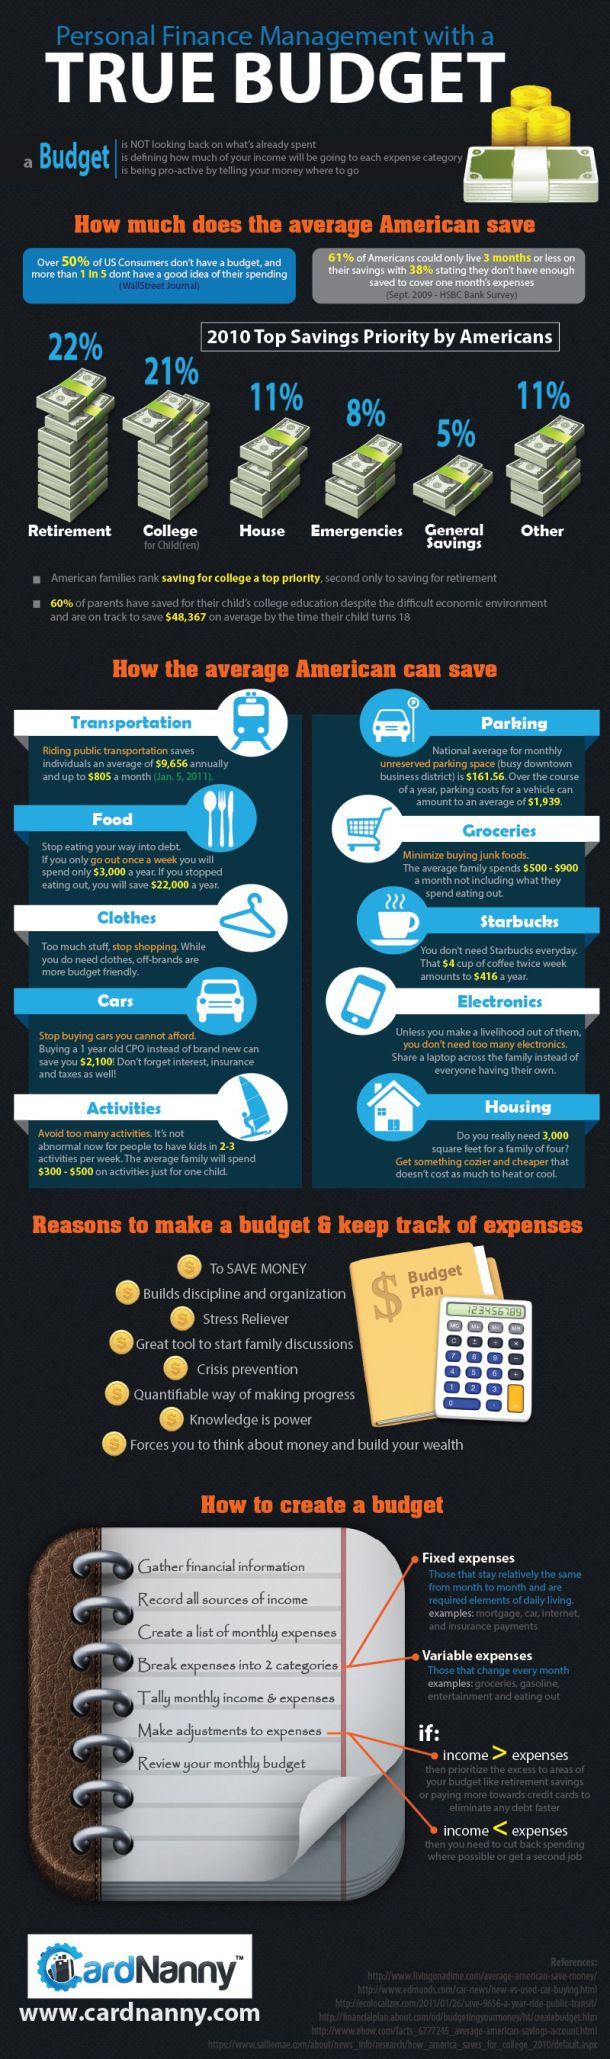 Personal Finance Management With a True Budget[INFOGRAPHIC]